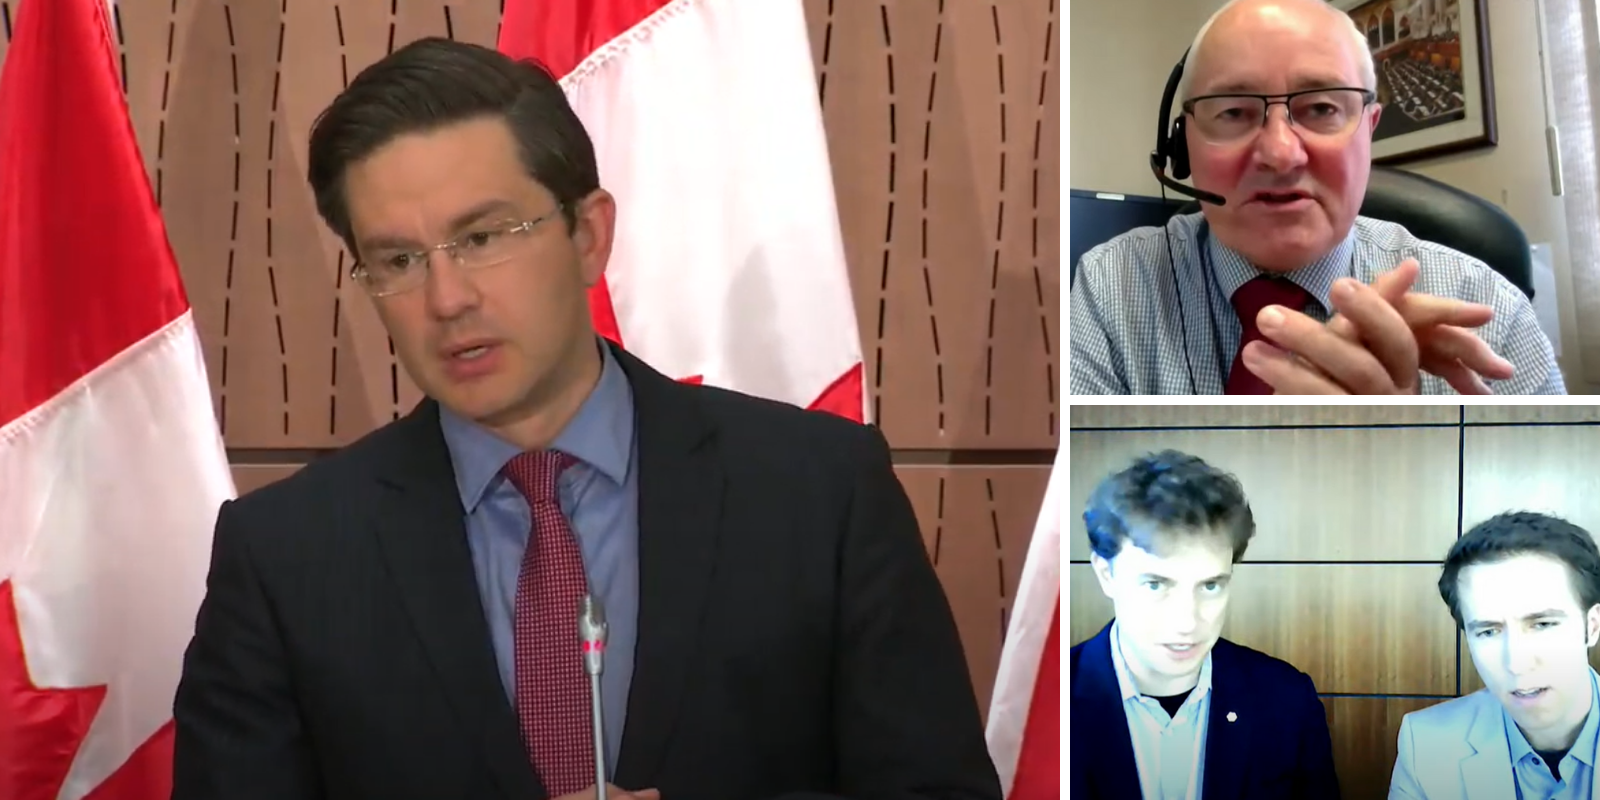 WATCH: Poilievre calls out Liberal chair of Finance Committee for being a 'bodyguard' for Trudeau, Liberal witnesses